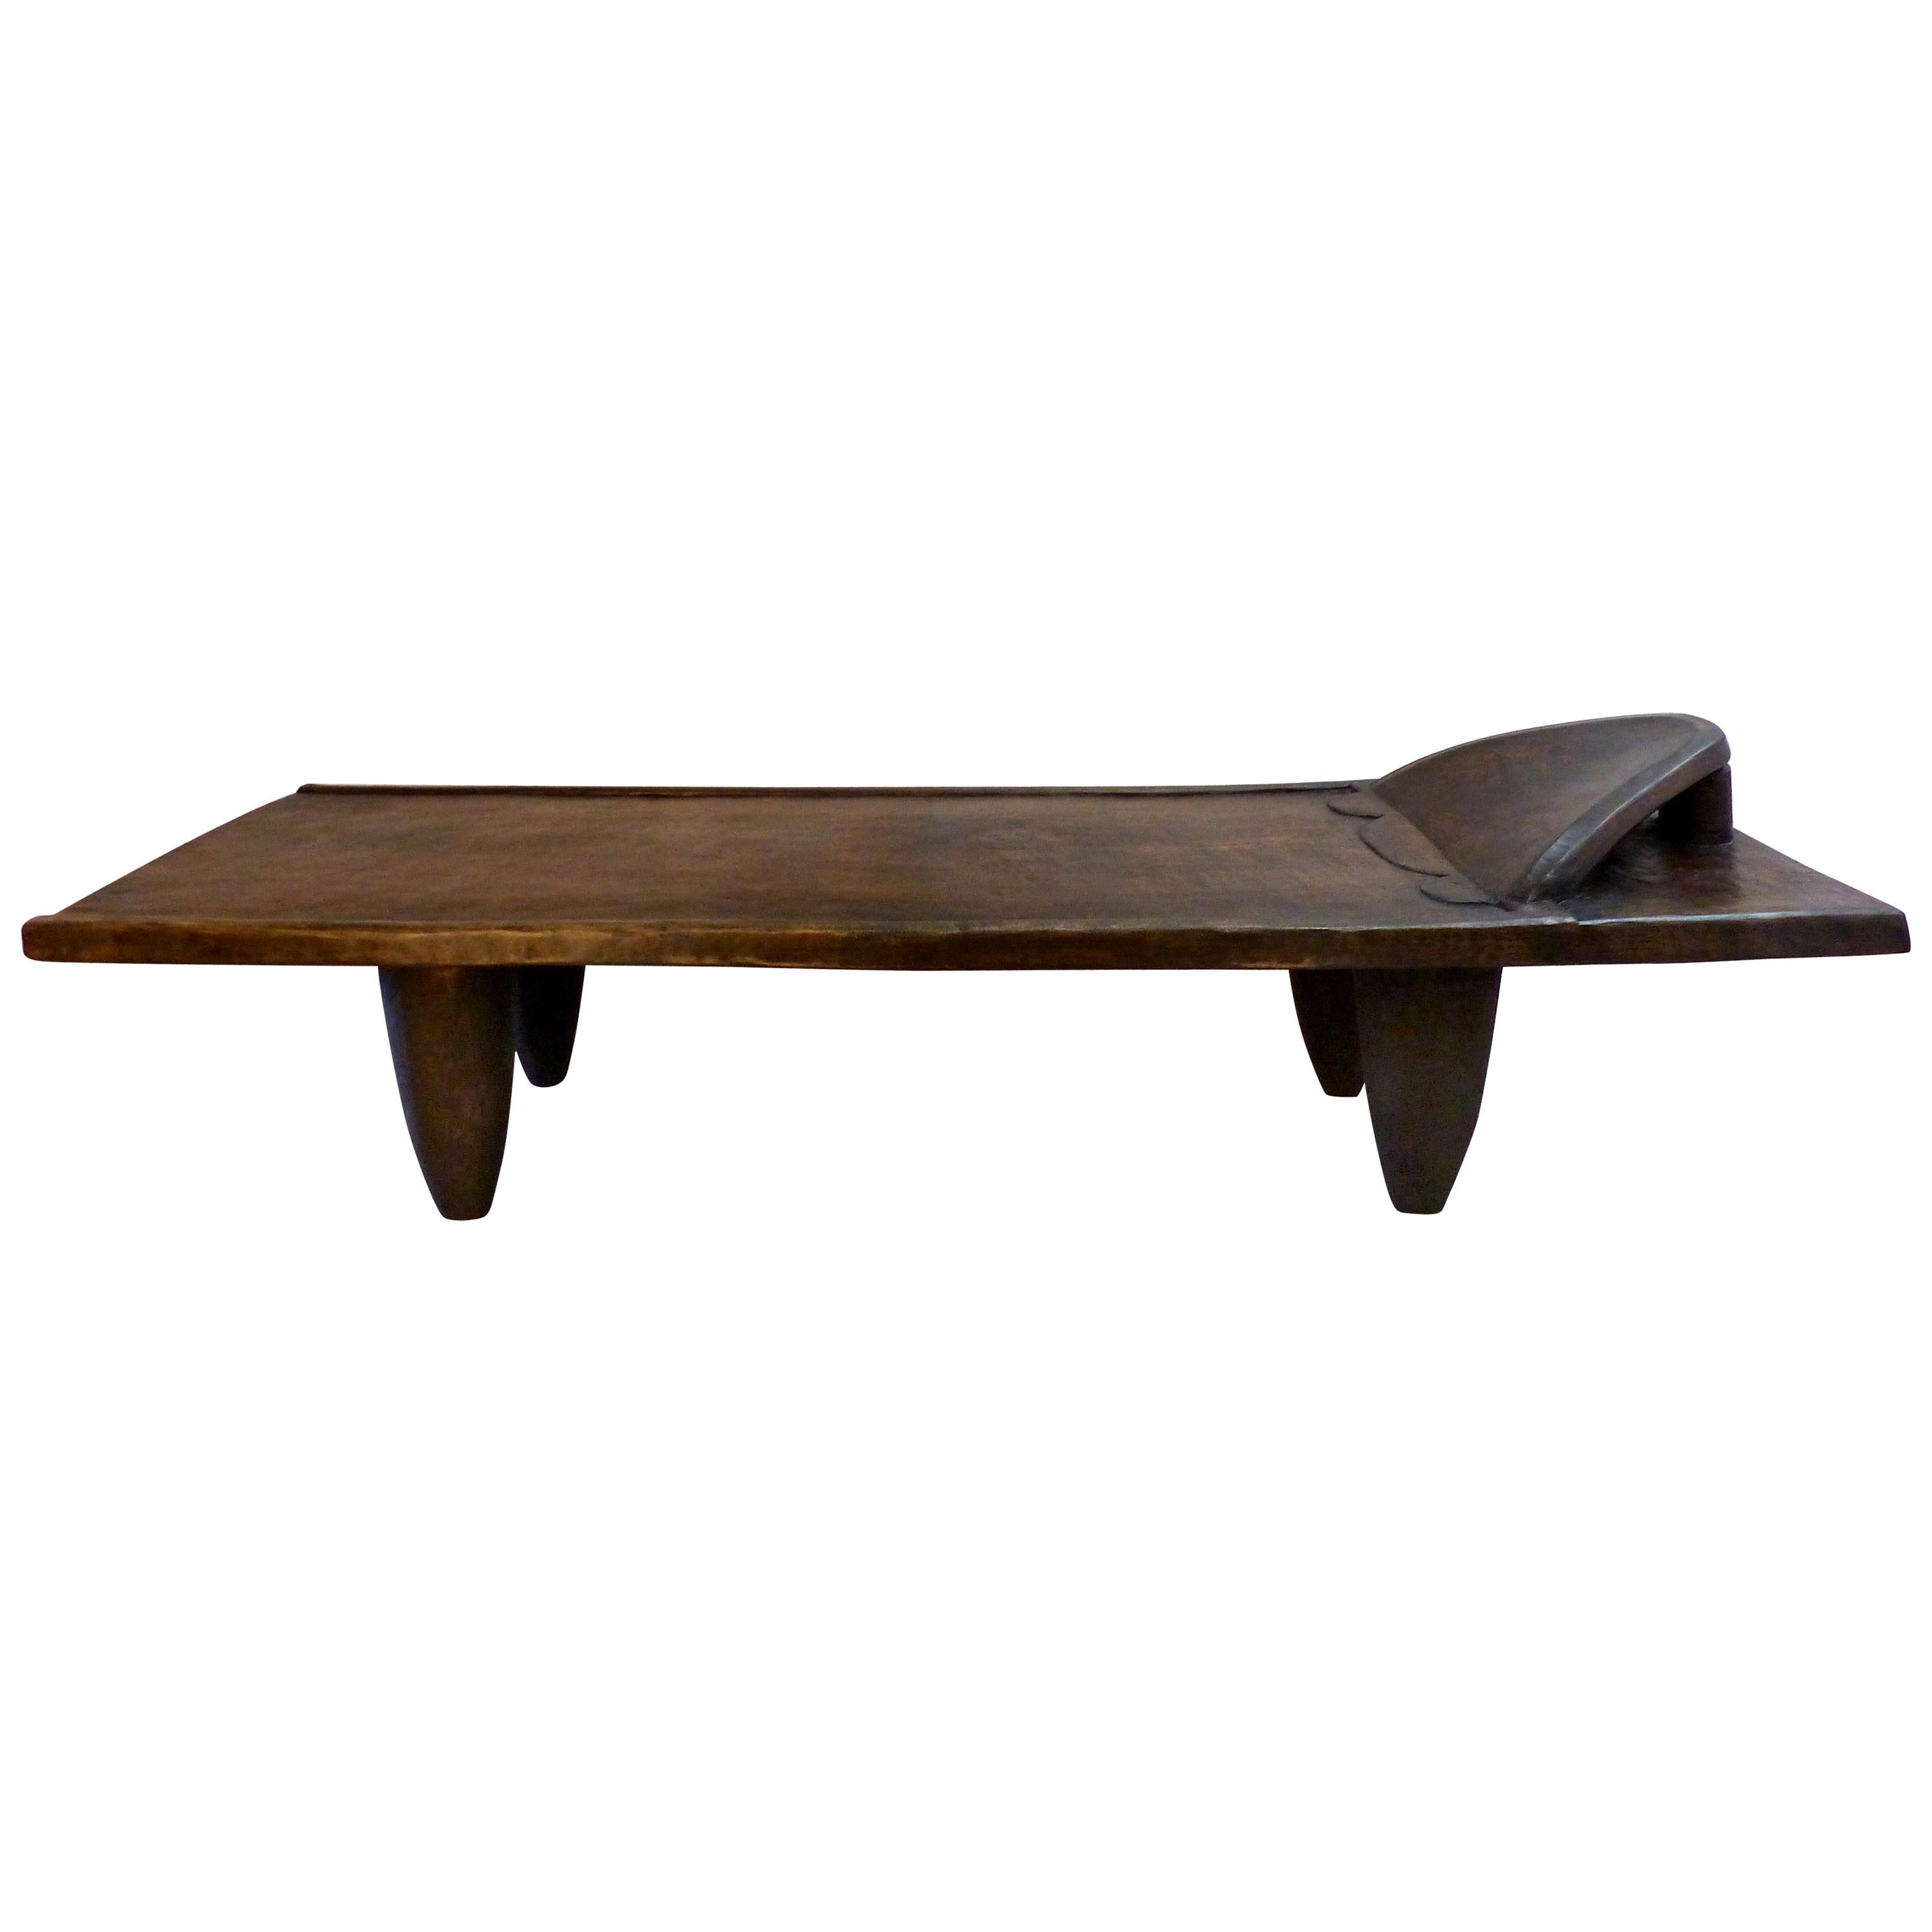 African Senufo Bed/Bench from the Coite d'Ivoire